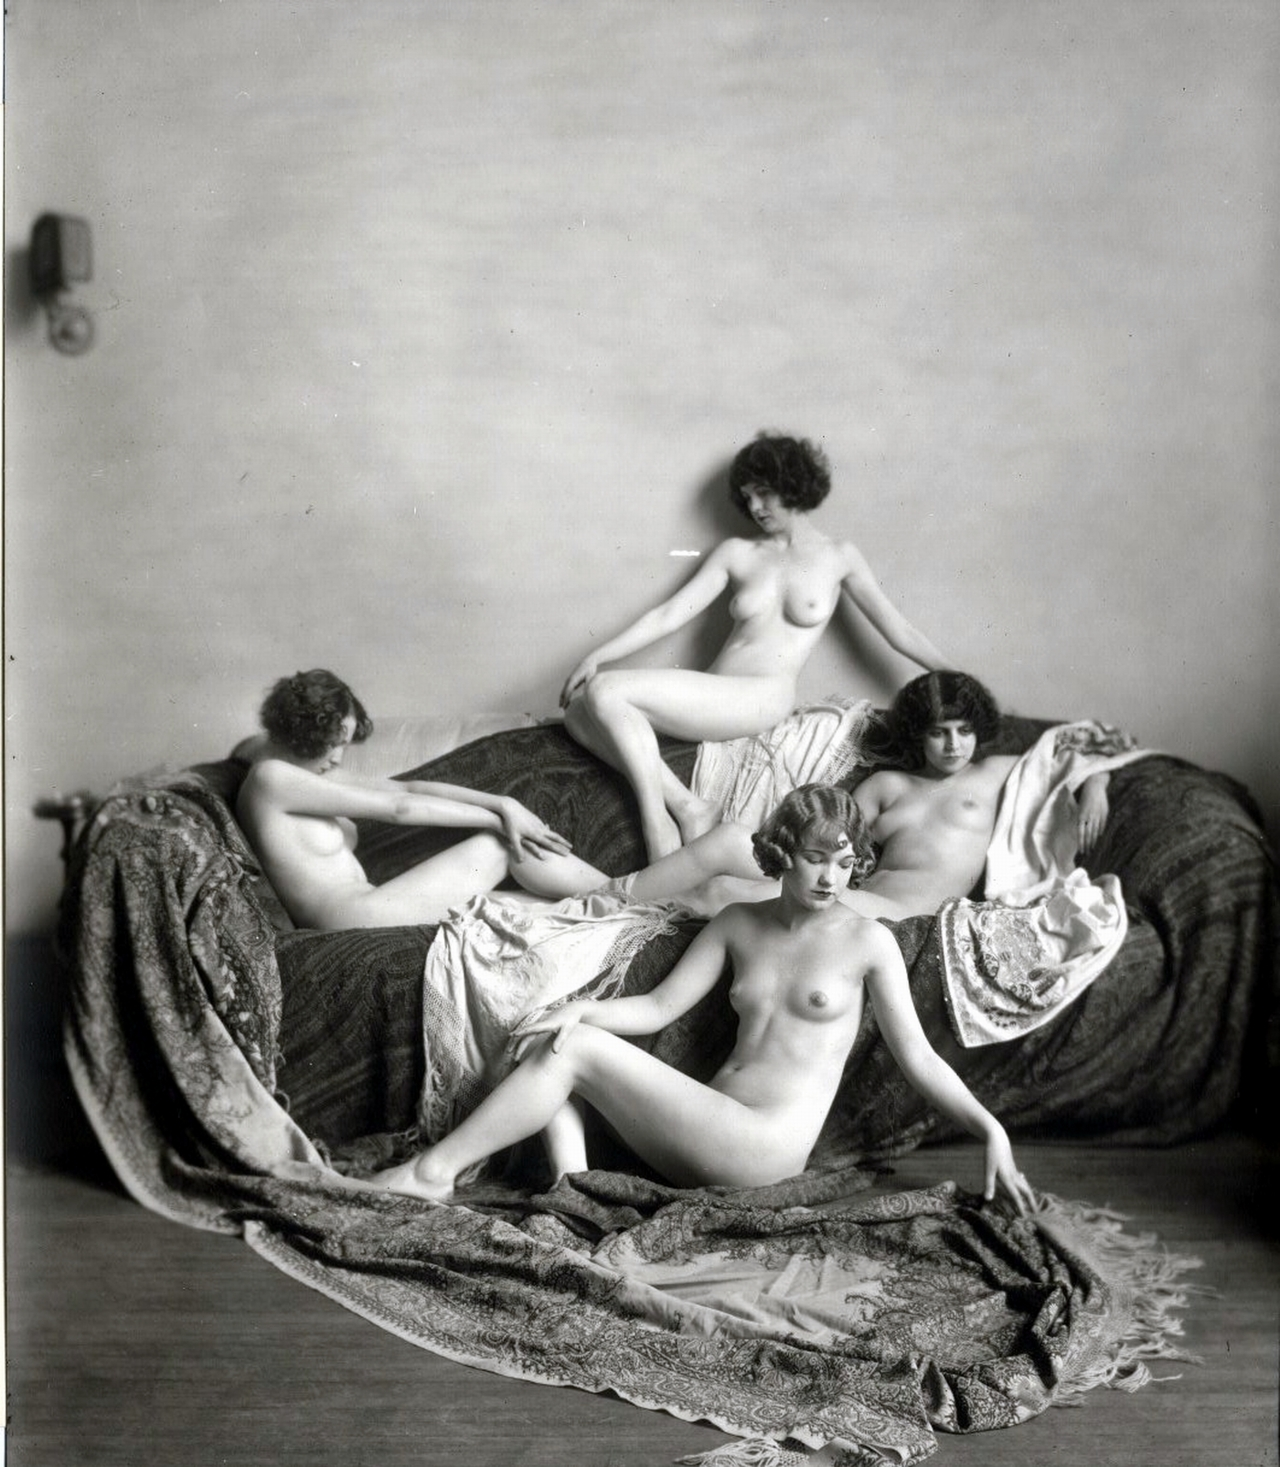 Ziegfeld Girls: _ziegfeld_girls__8_20120409_1608913968.jpeg